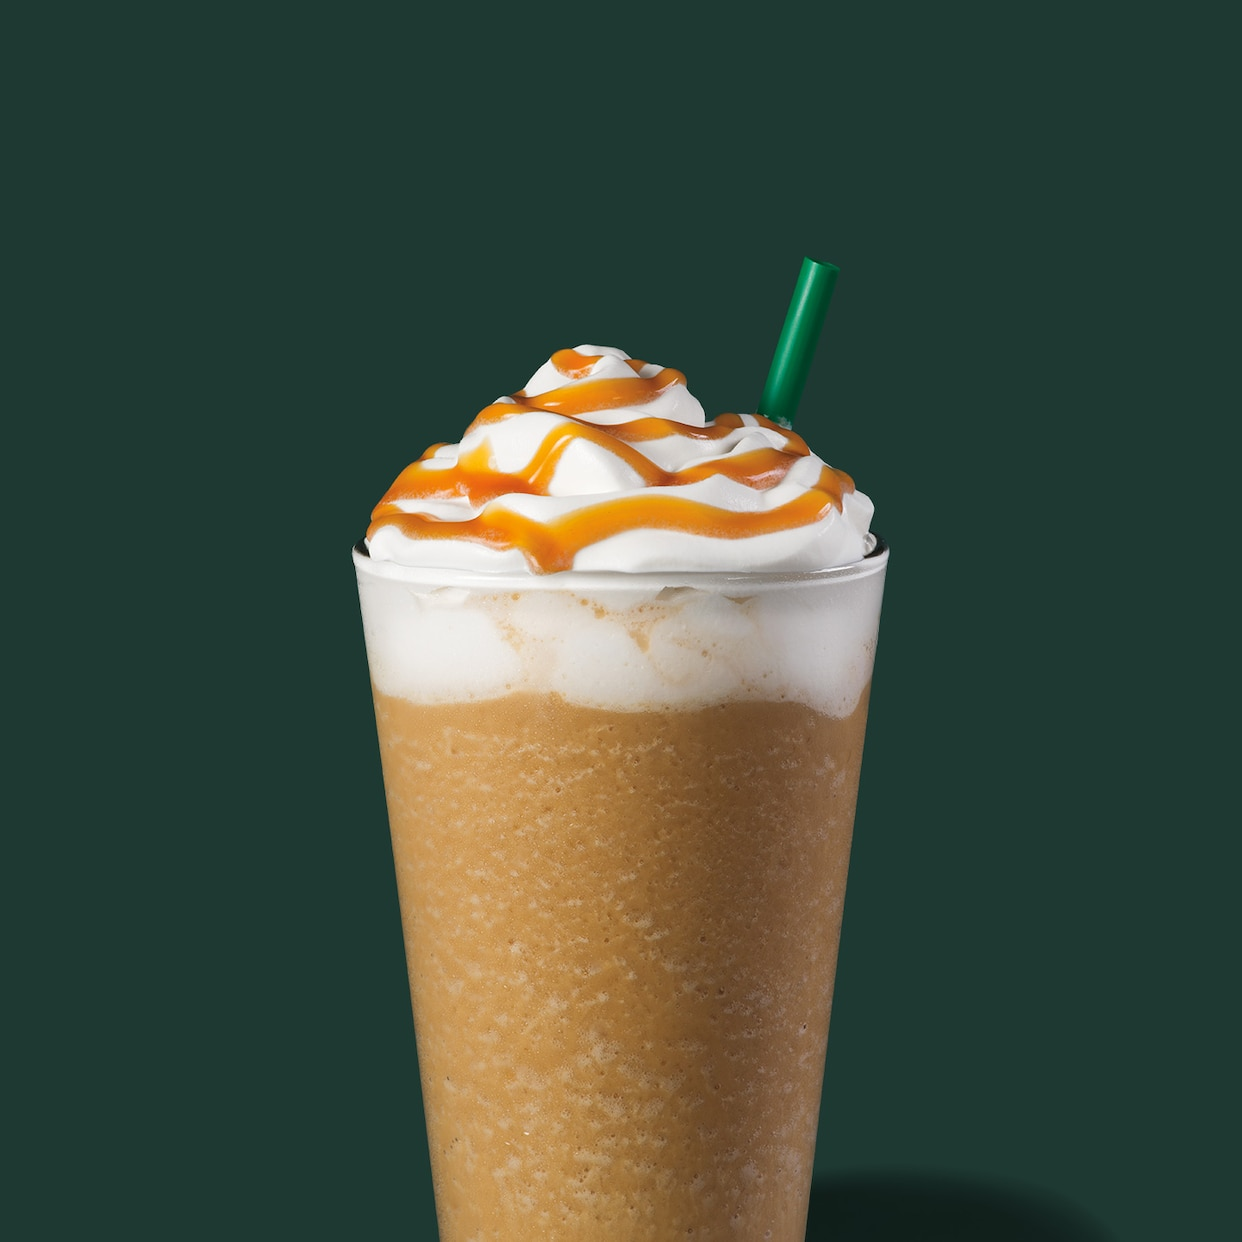 Caramel Frappuccino Blended Beverage Starbucks Coffee Company